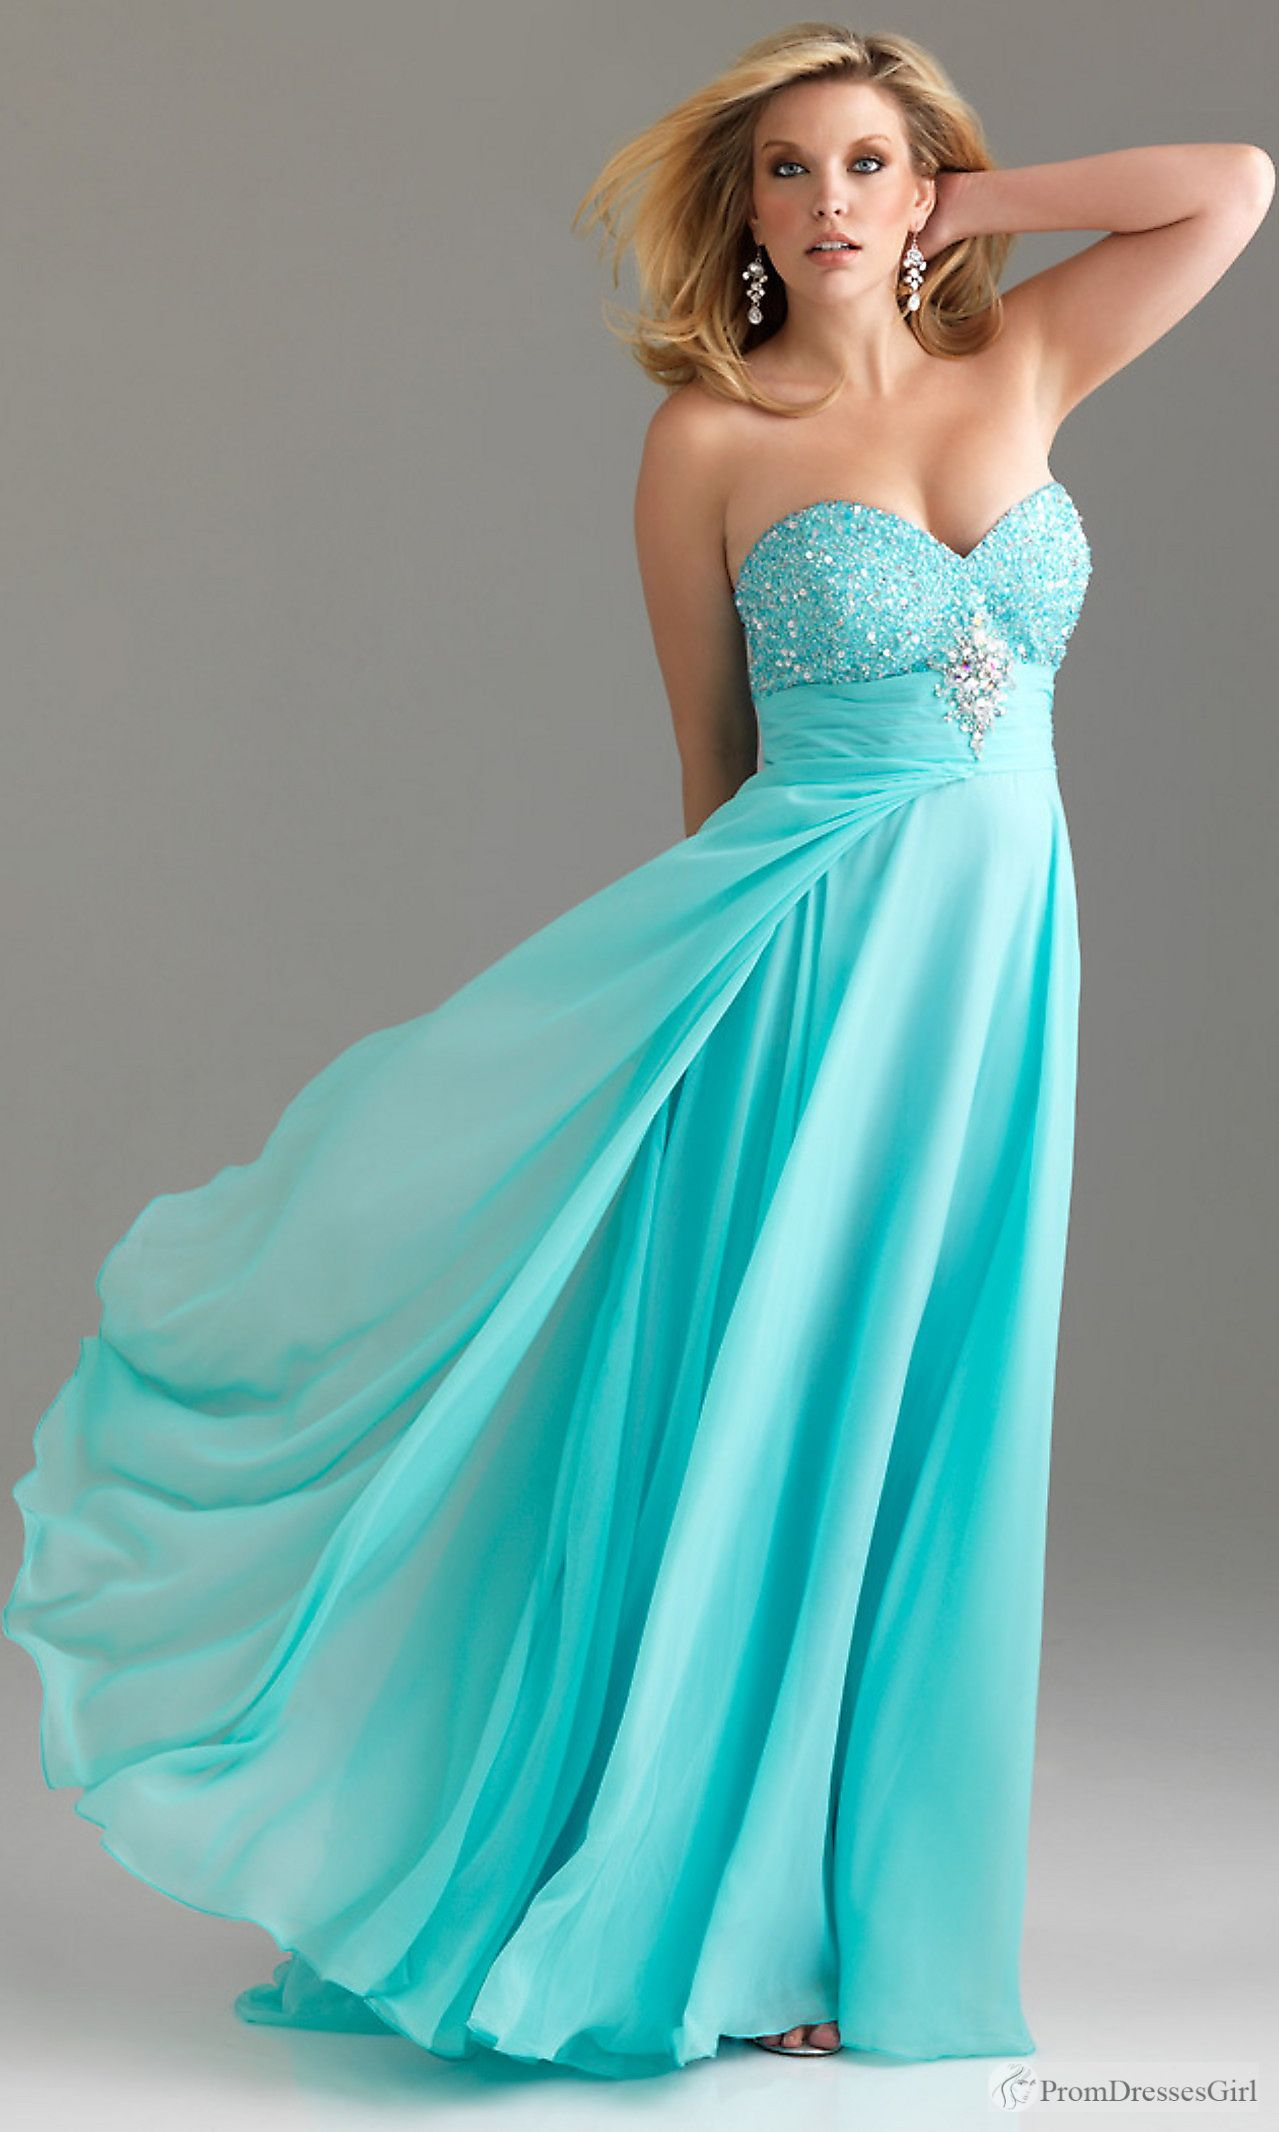 Plus Size Prom Dress | Plus size dresses | Pinterest | Prom, Clothes ...